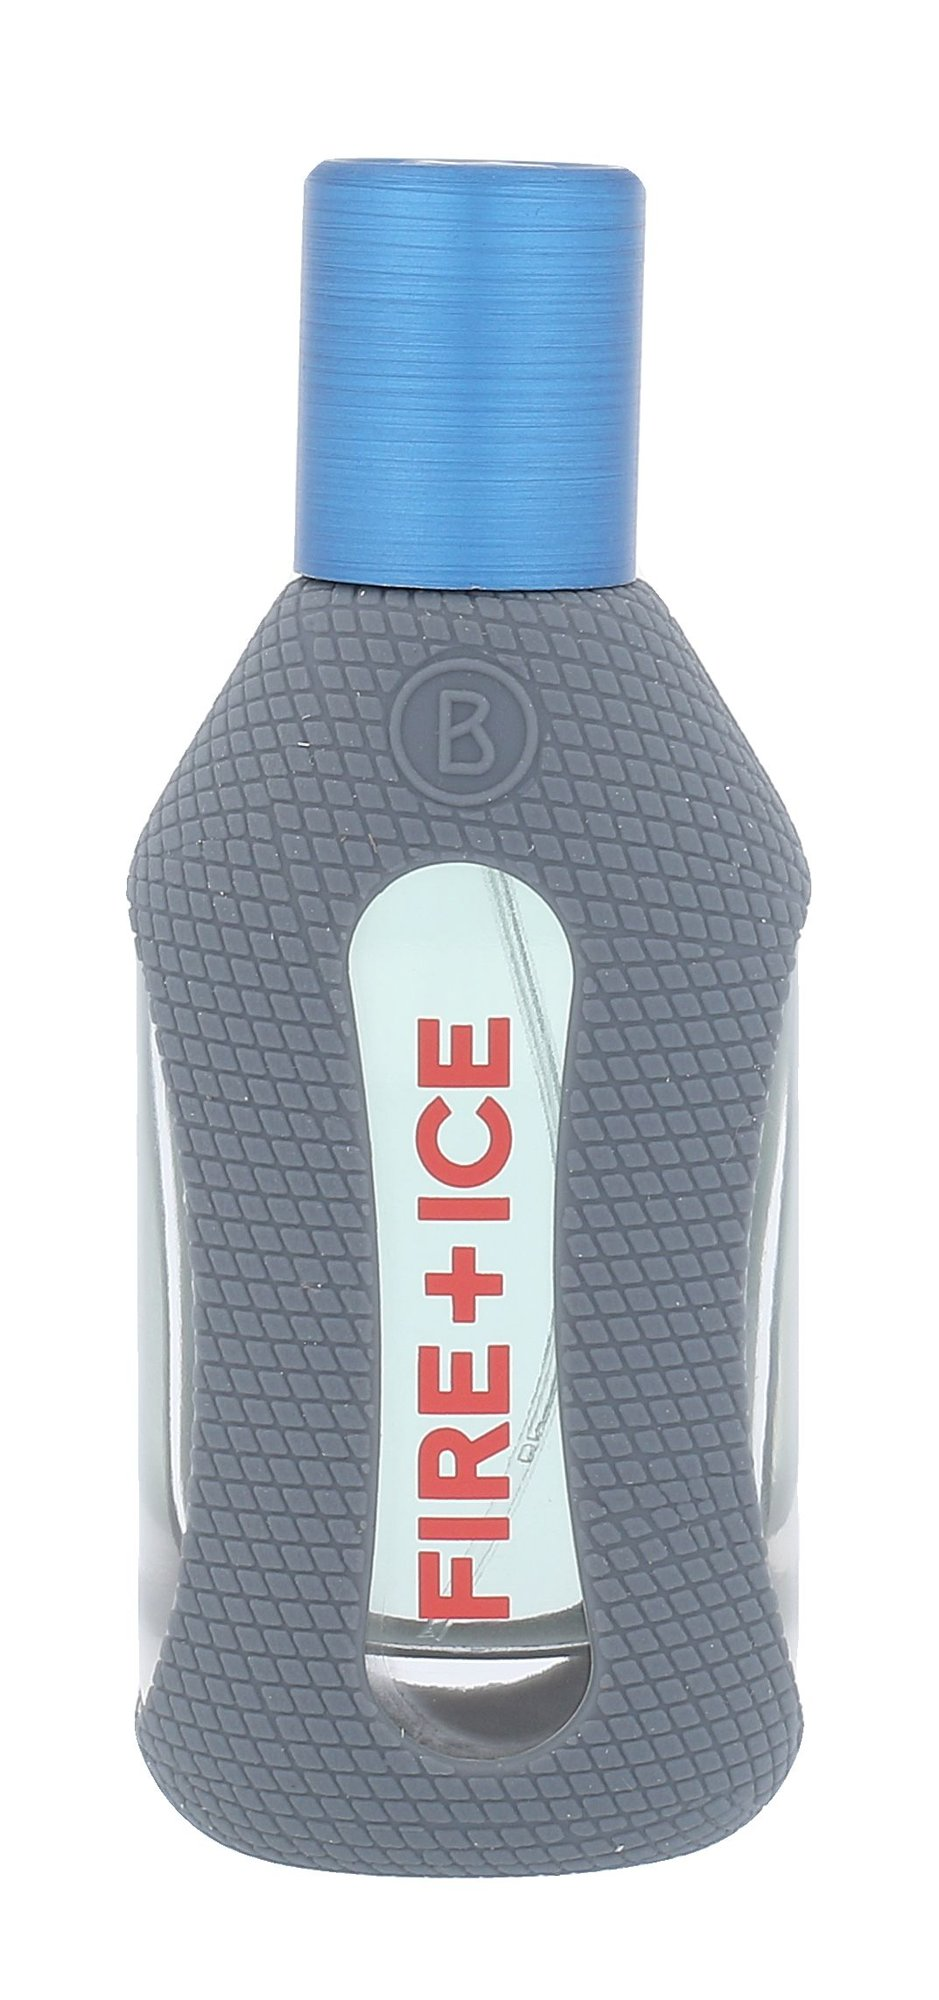 Bogner Fire + Ice EDT 40ml